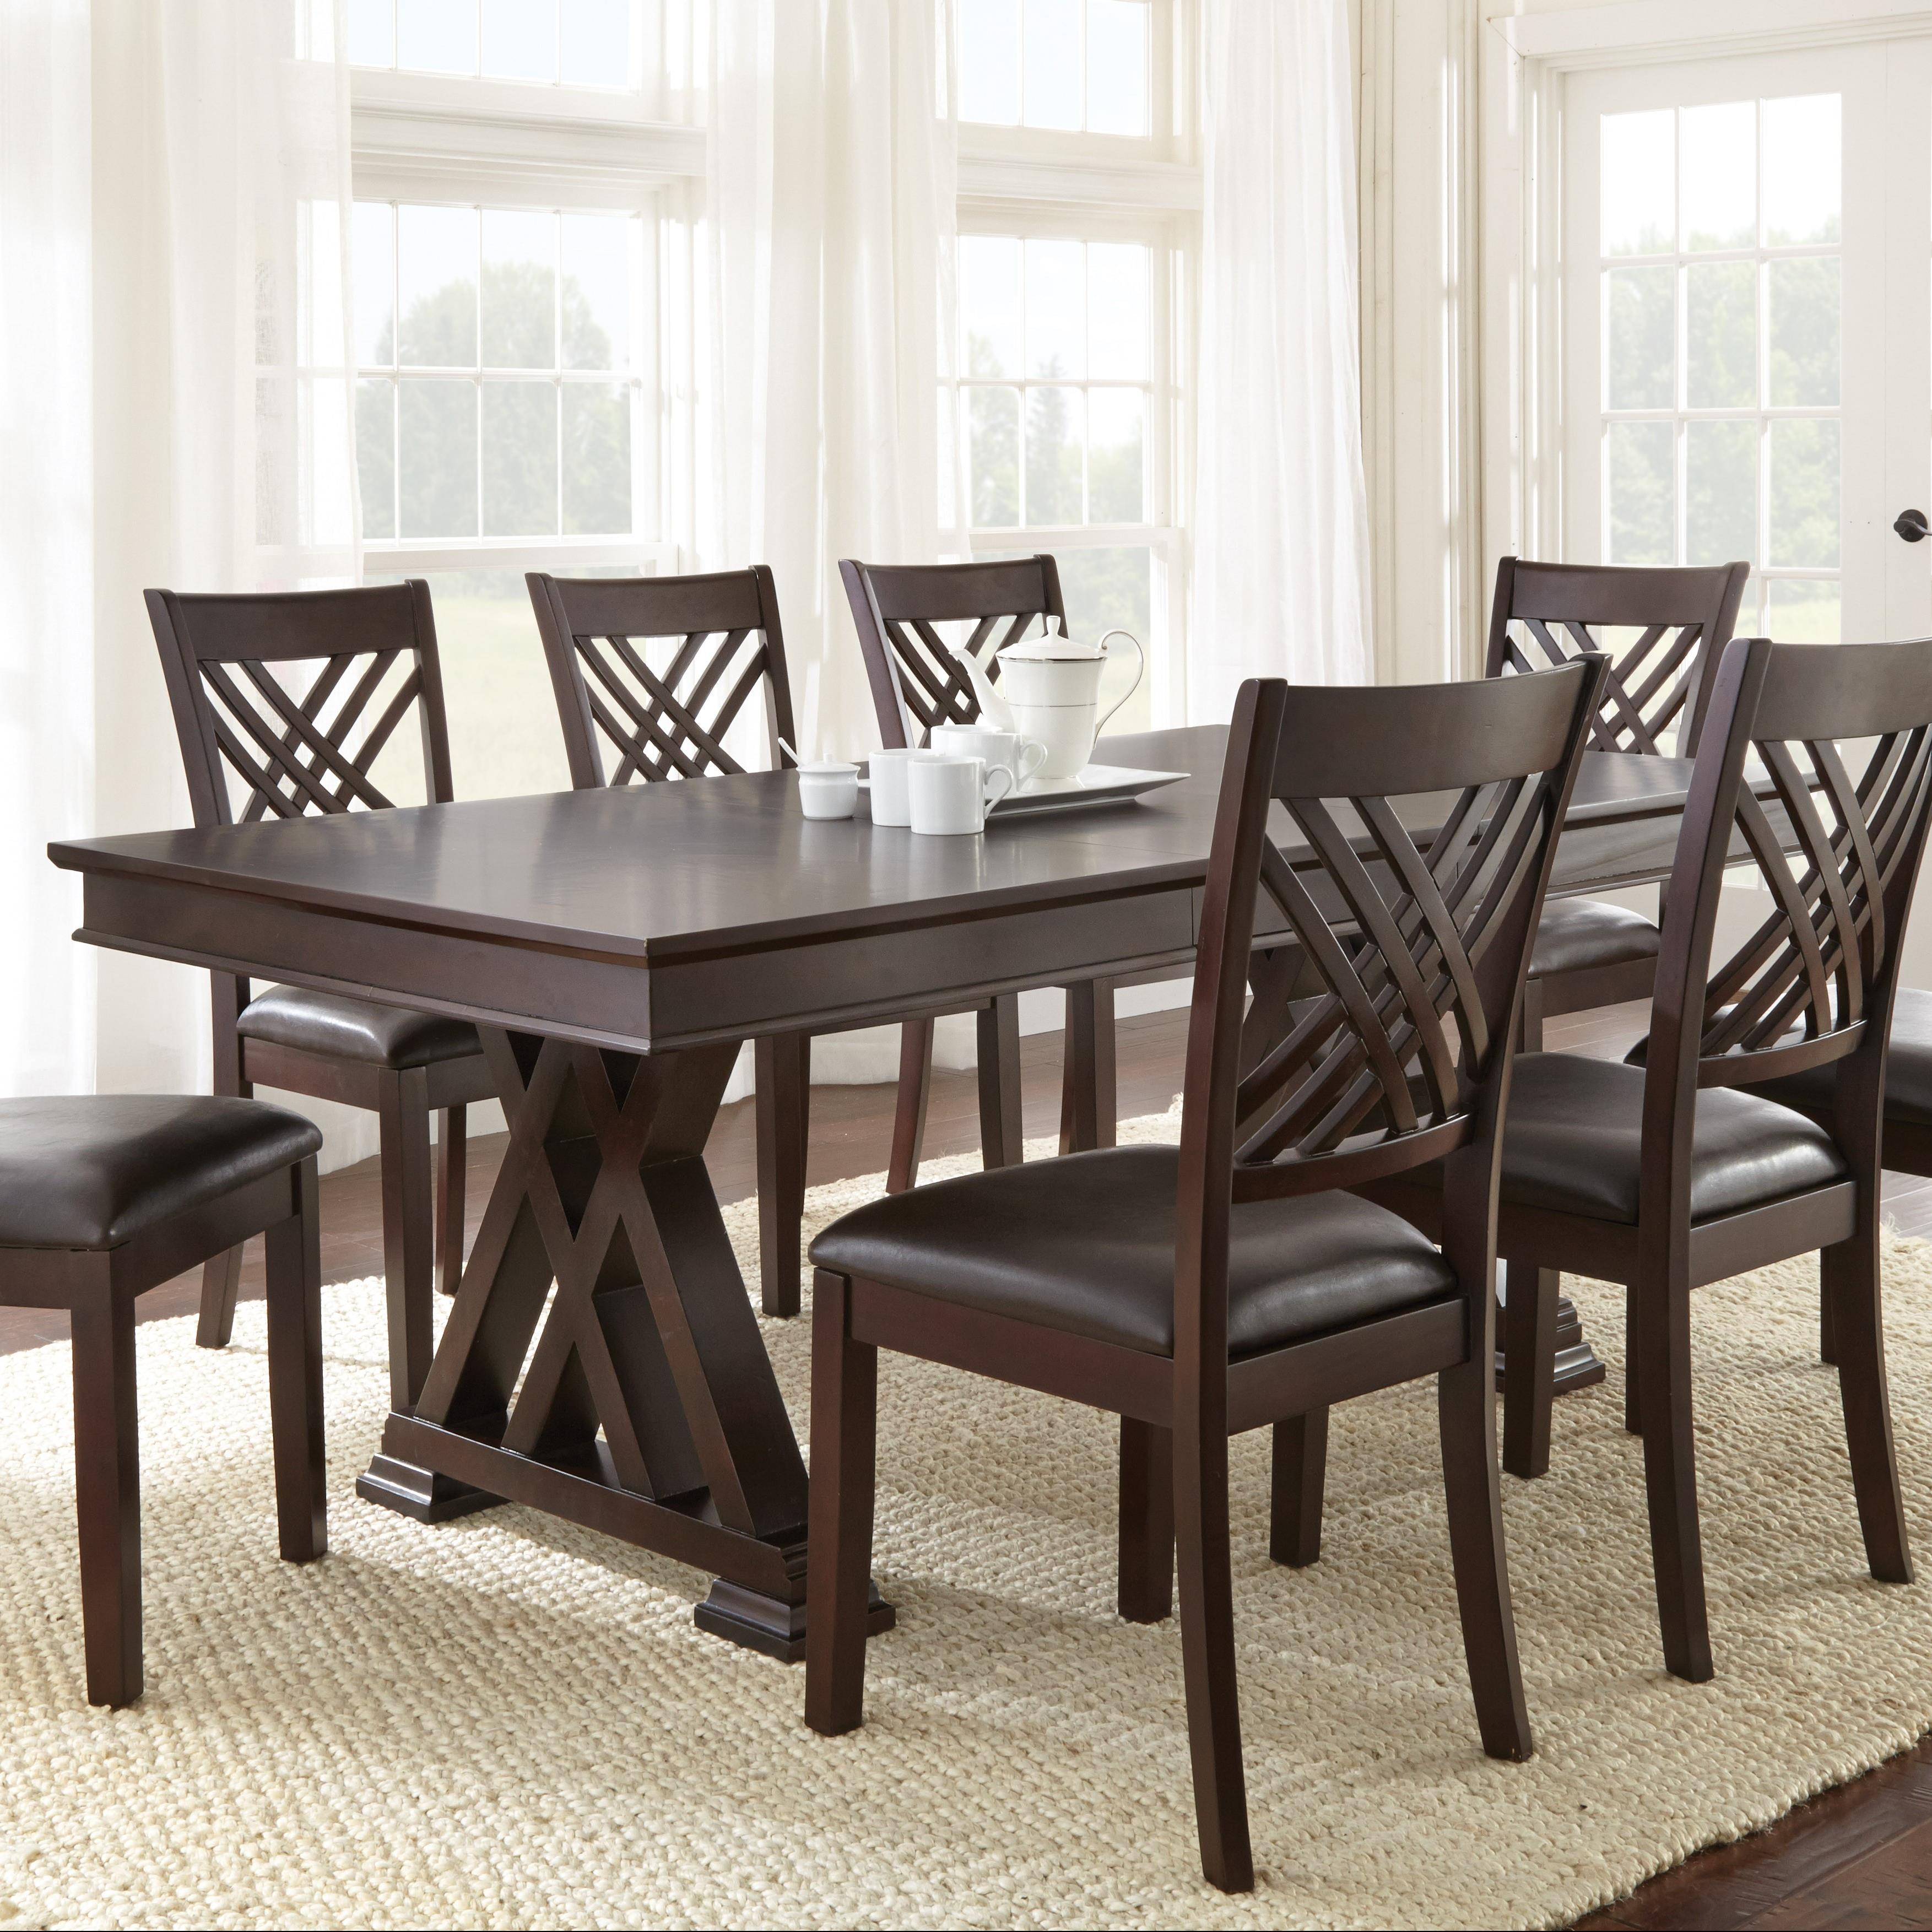 steve silver adrian x motif dining table and 18 leaf furniture superstore nm dining tables. Black Bedroom Furniture Sets. Home Design Ideas